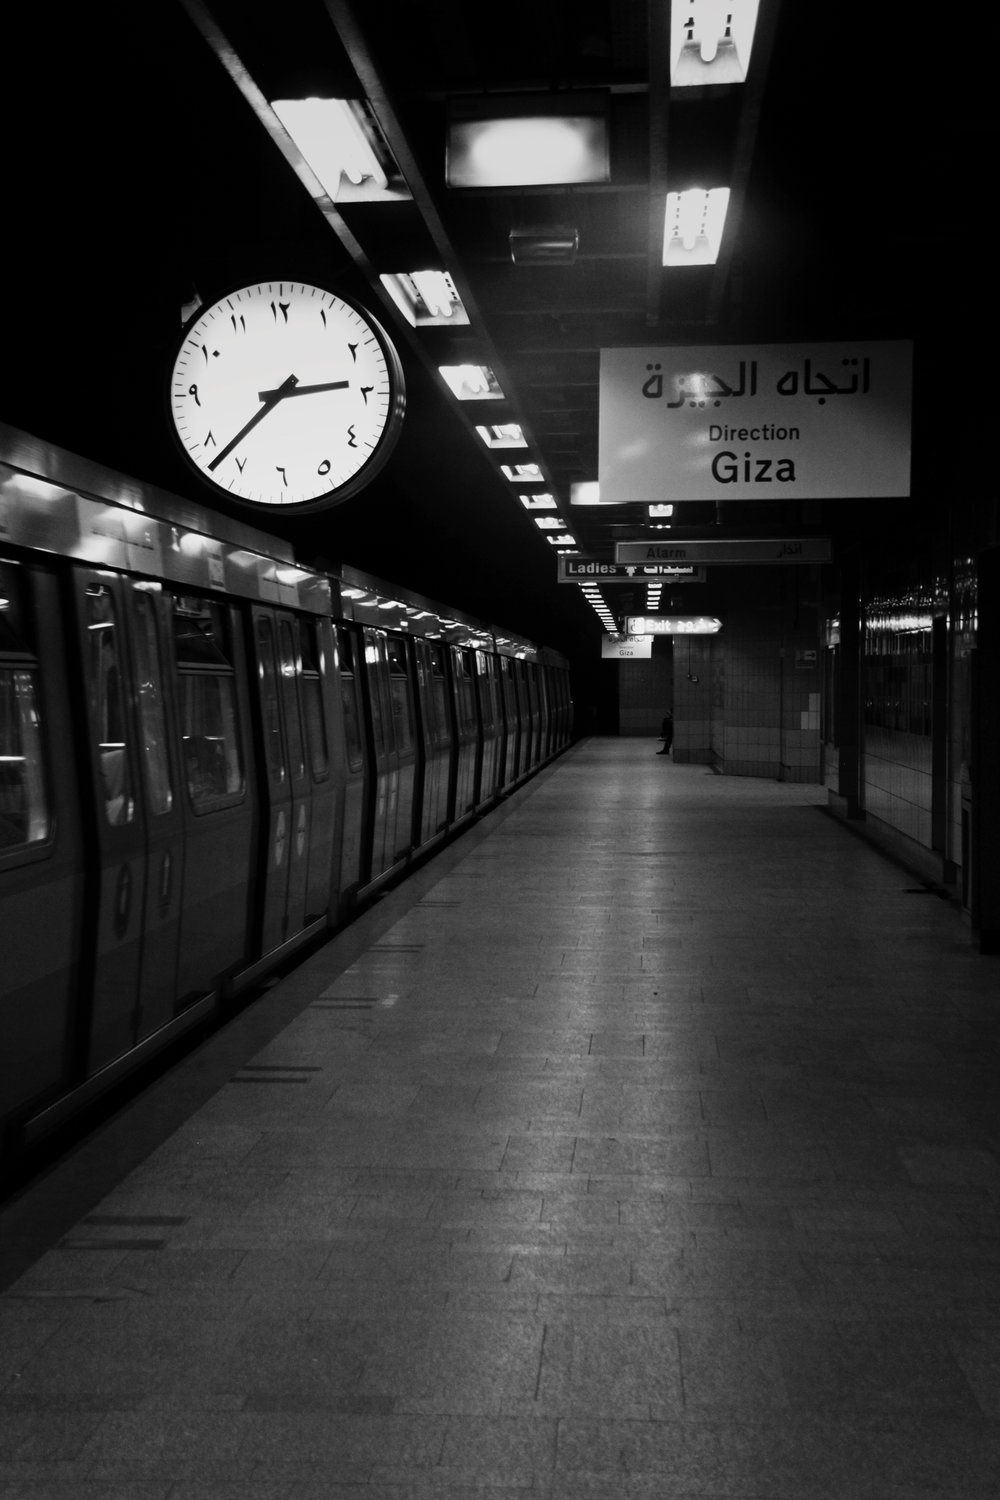 """""""Giza Platform""""All images © Stephanie Elaine Cavanaugh. All rights reserved."""